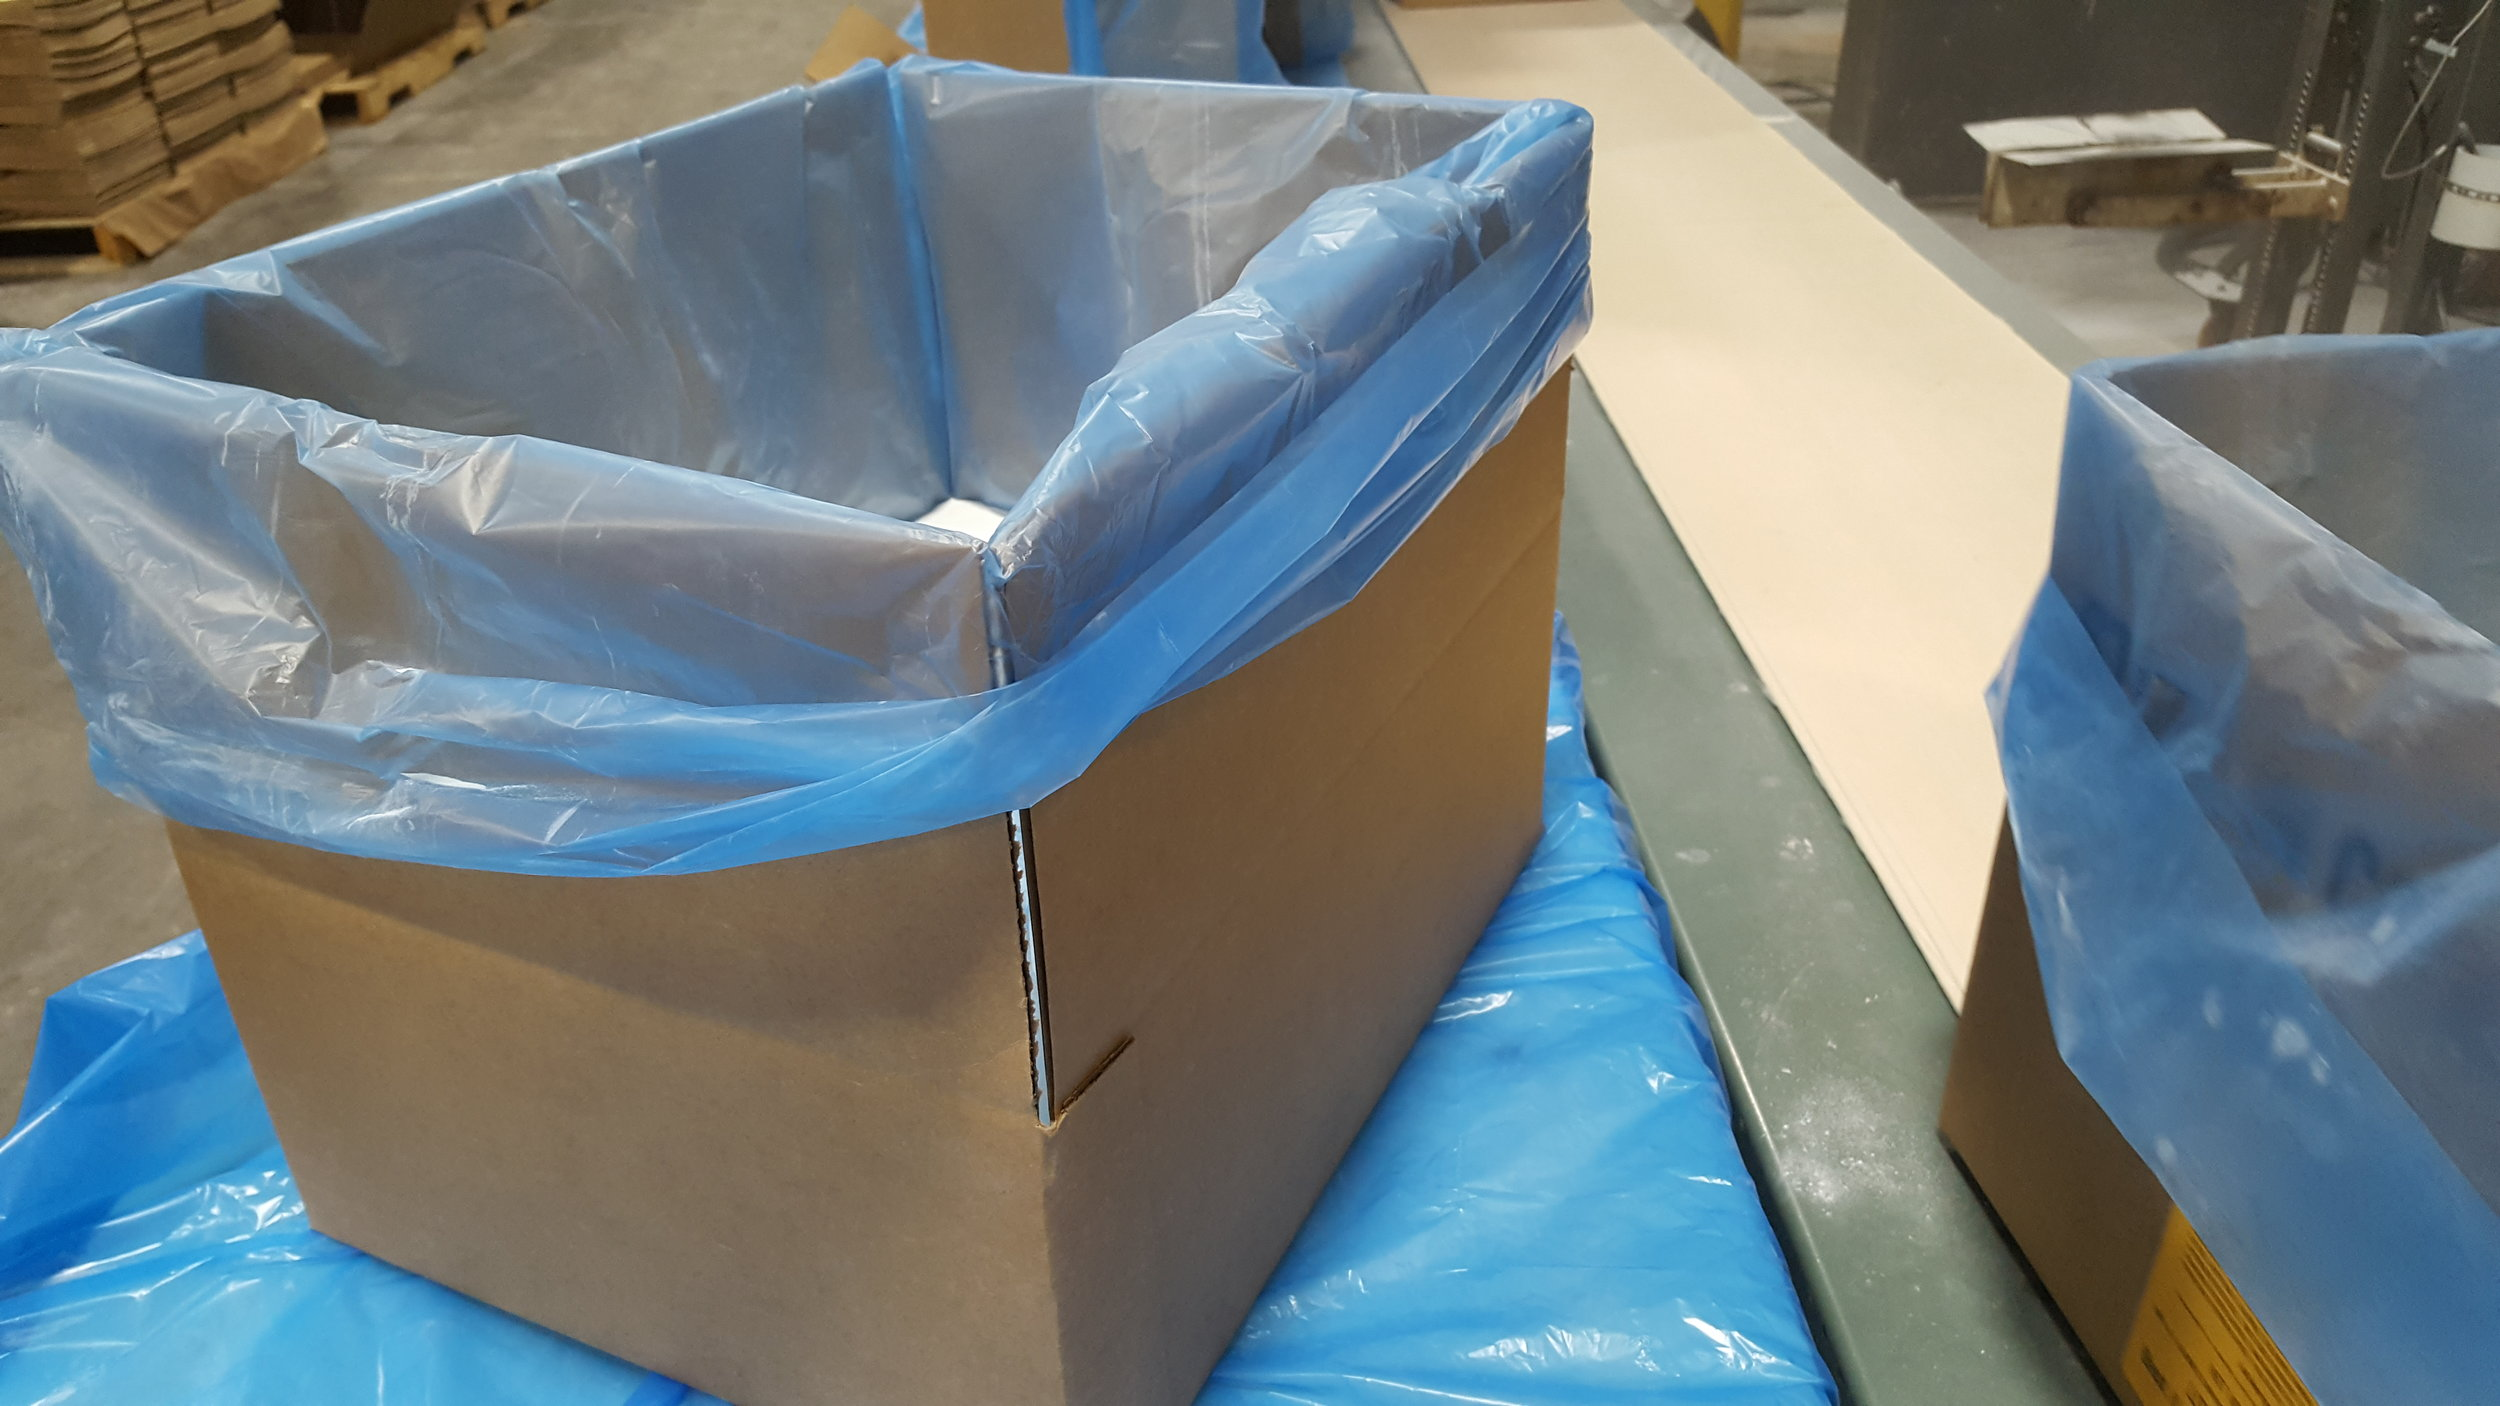 Plastic bag in a box - 20-50 pounds